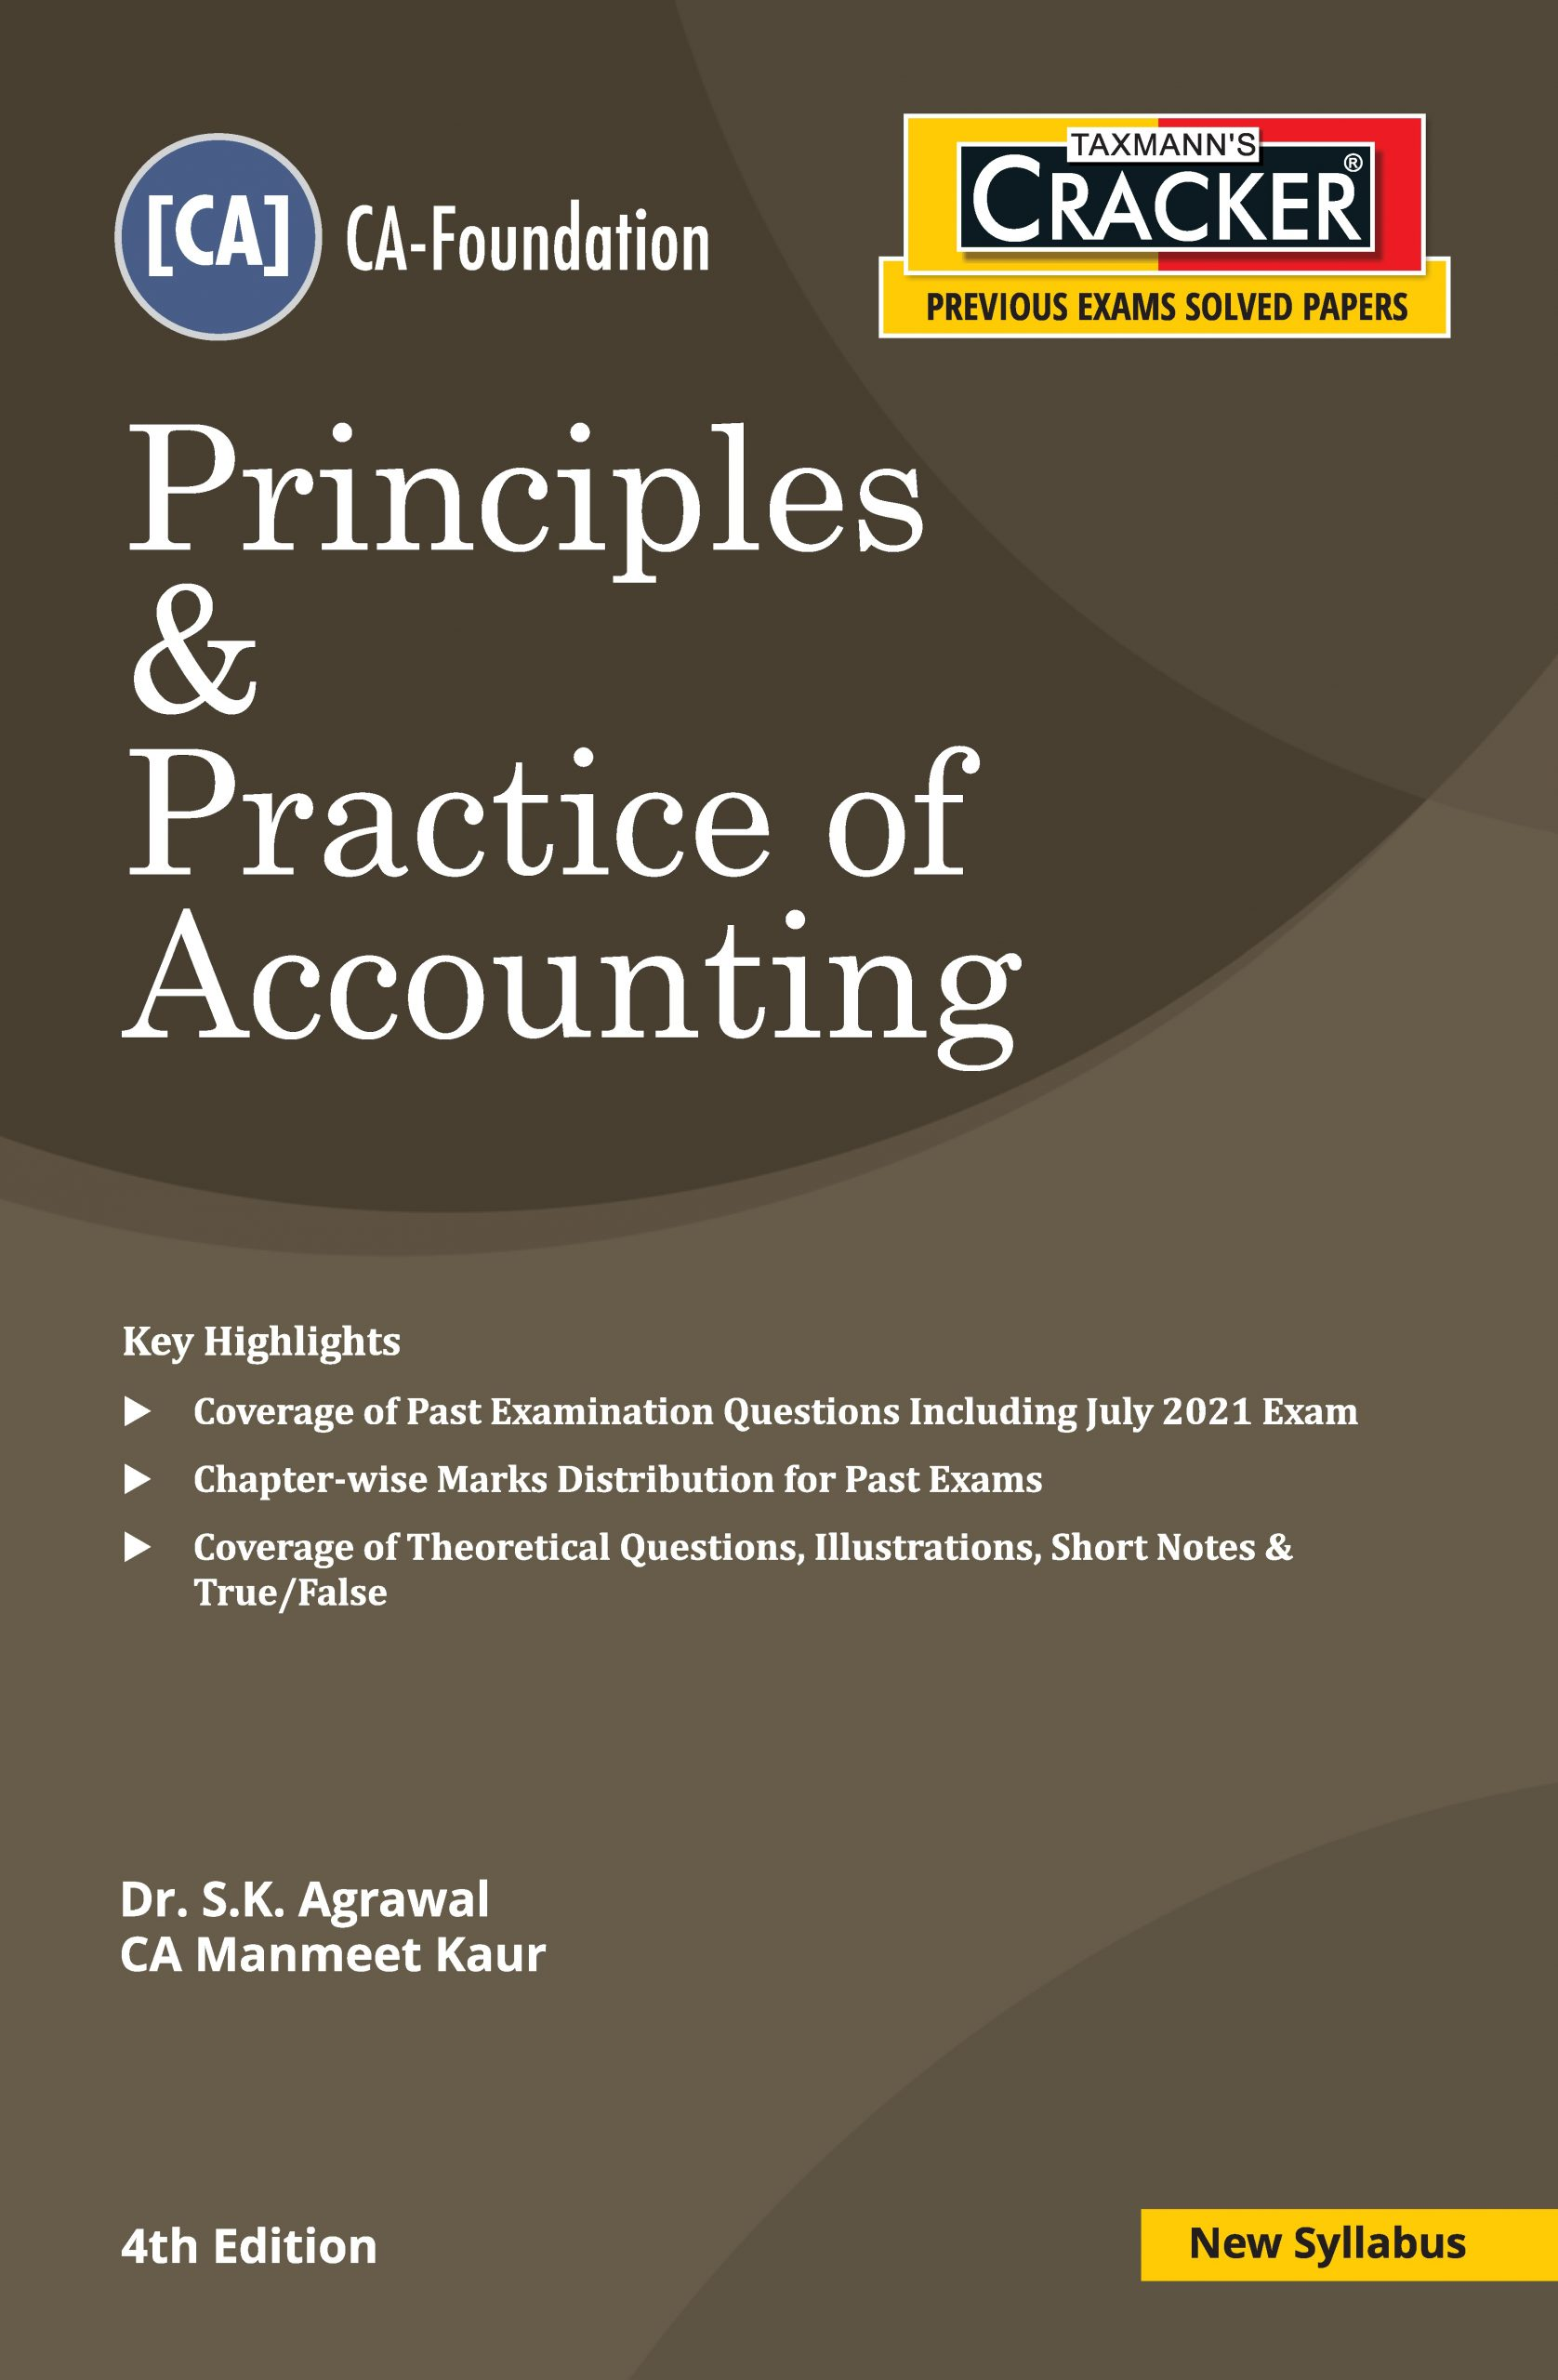 Taxmann Cracker CA foundation Principles & Practice of Accounting 2021